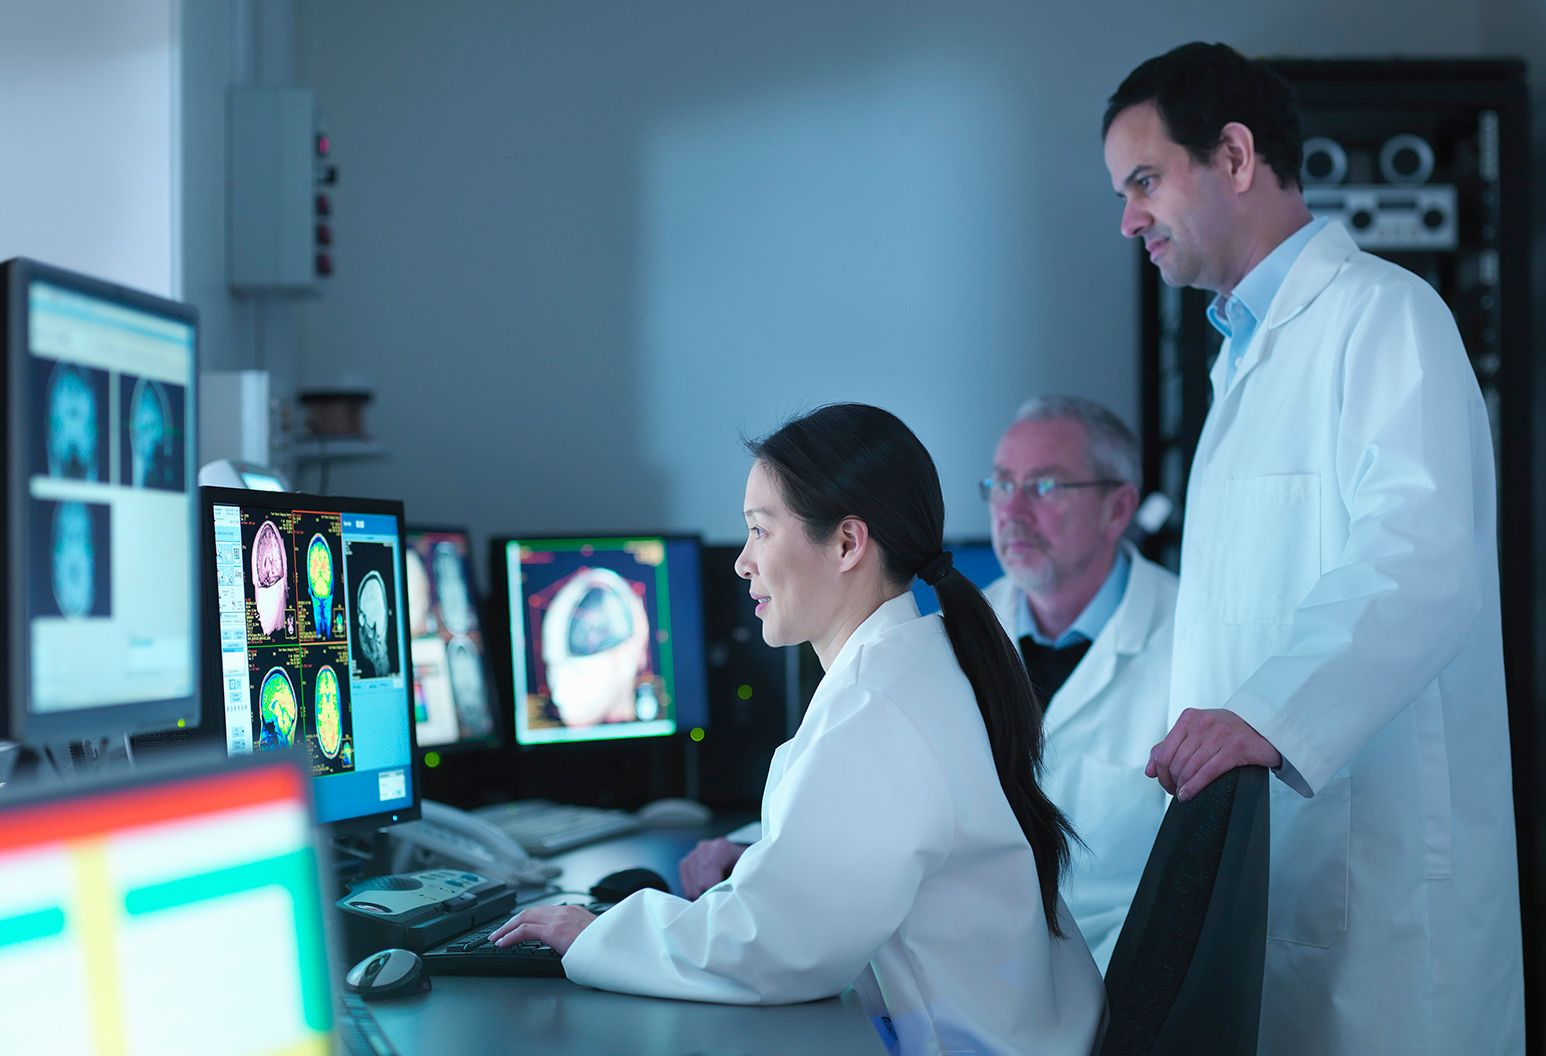 Clinicians review imaging